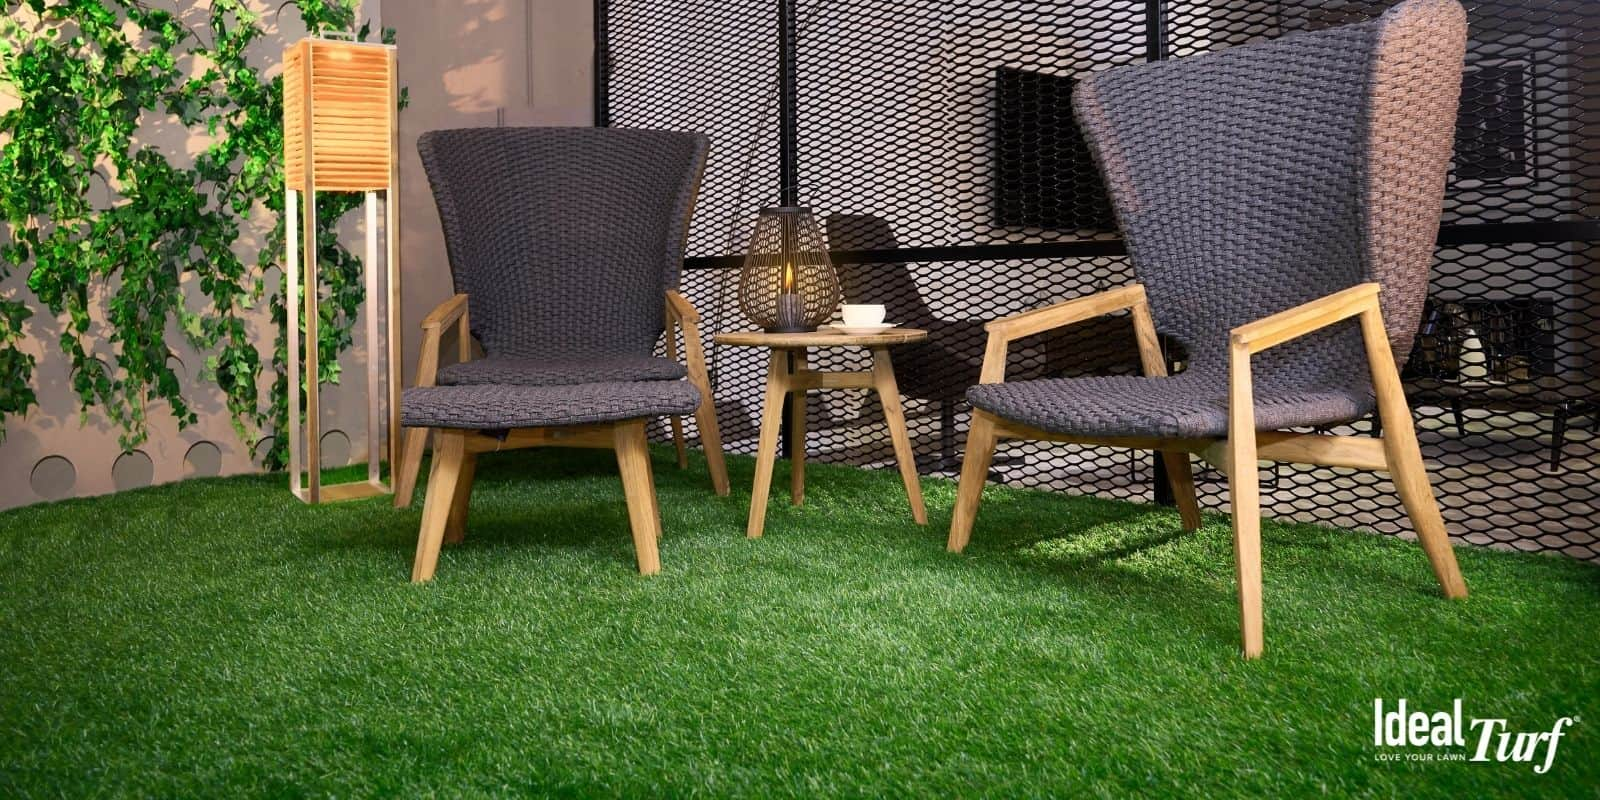 Indoor living space with two black chairs on artificial grass floor covering